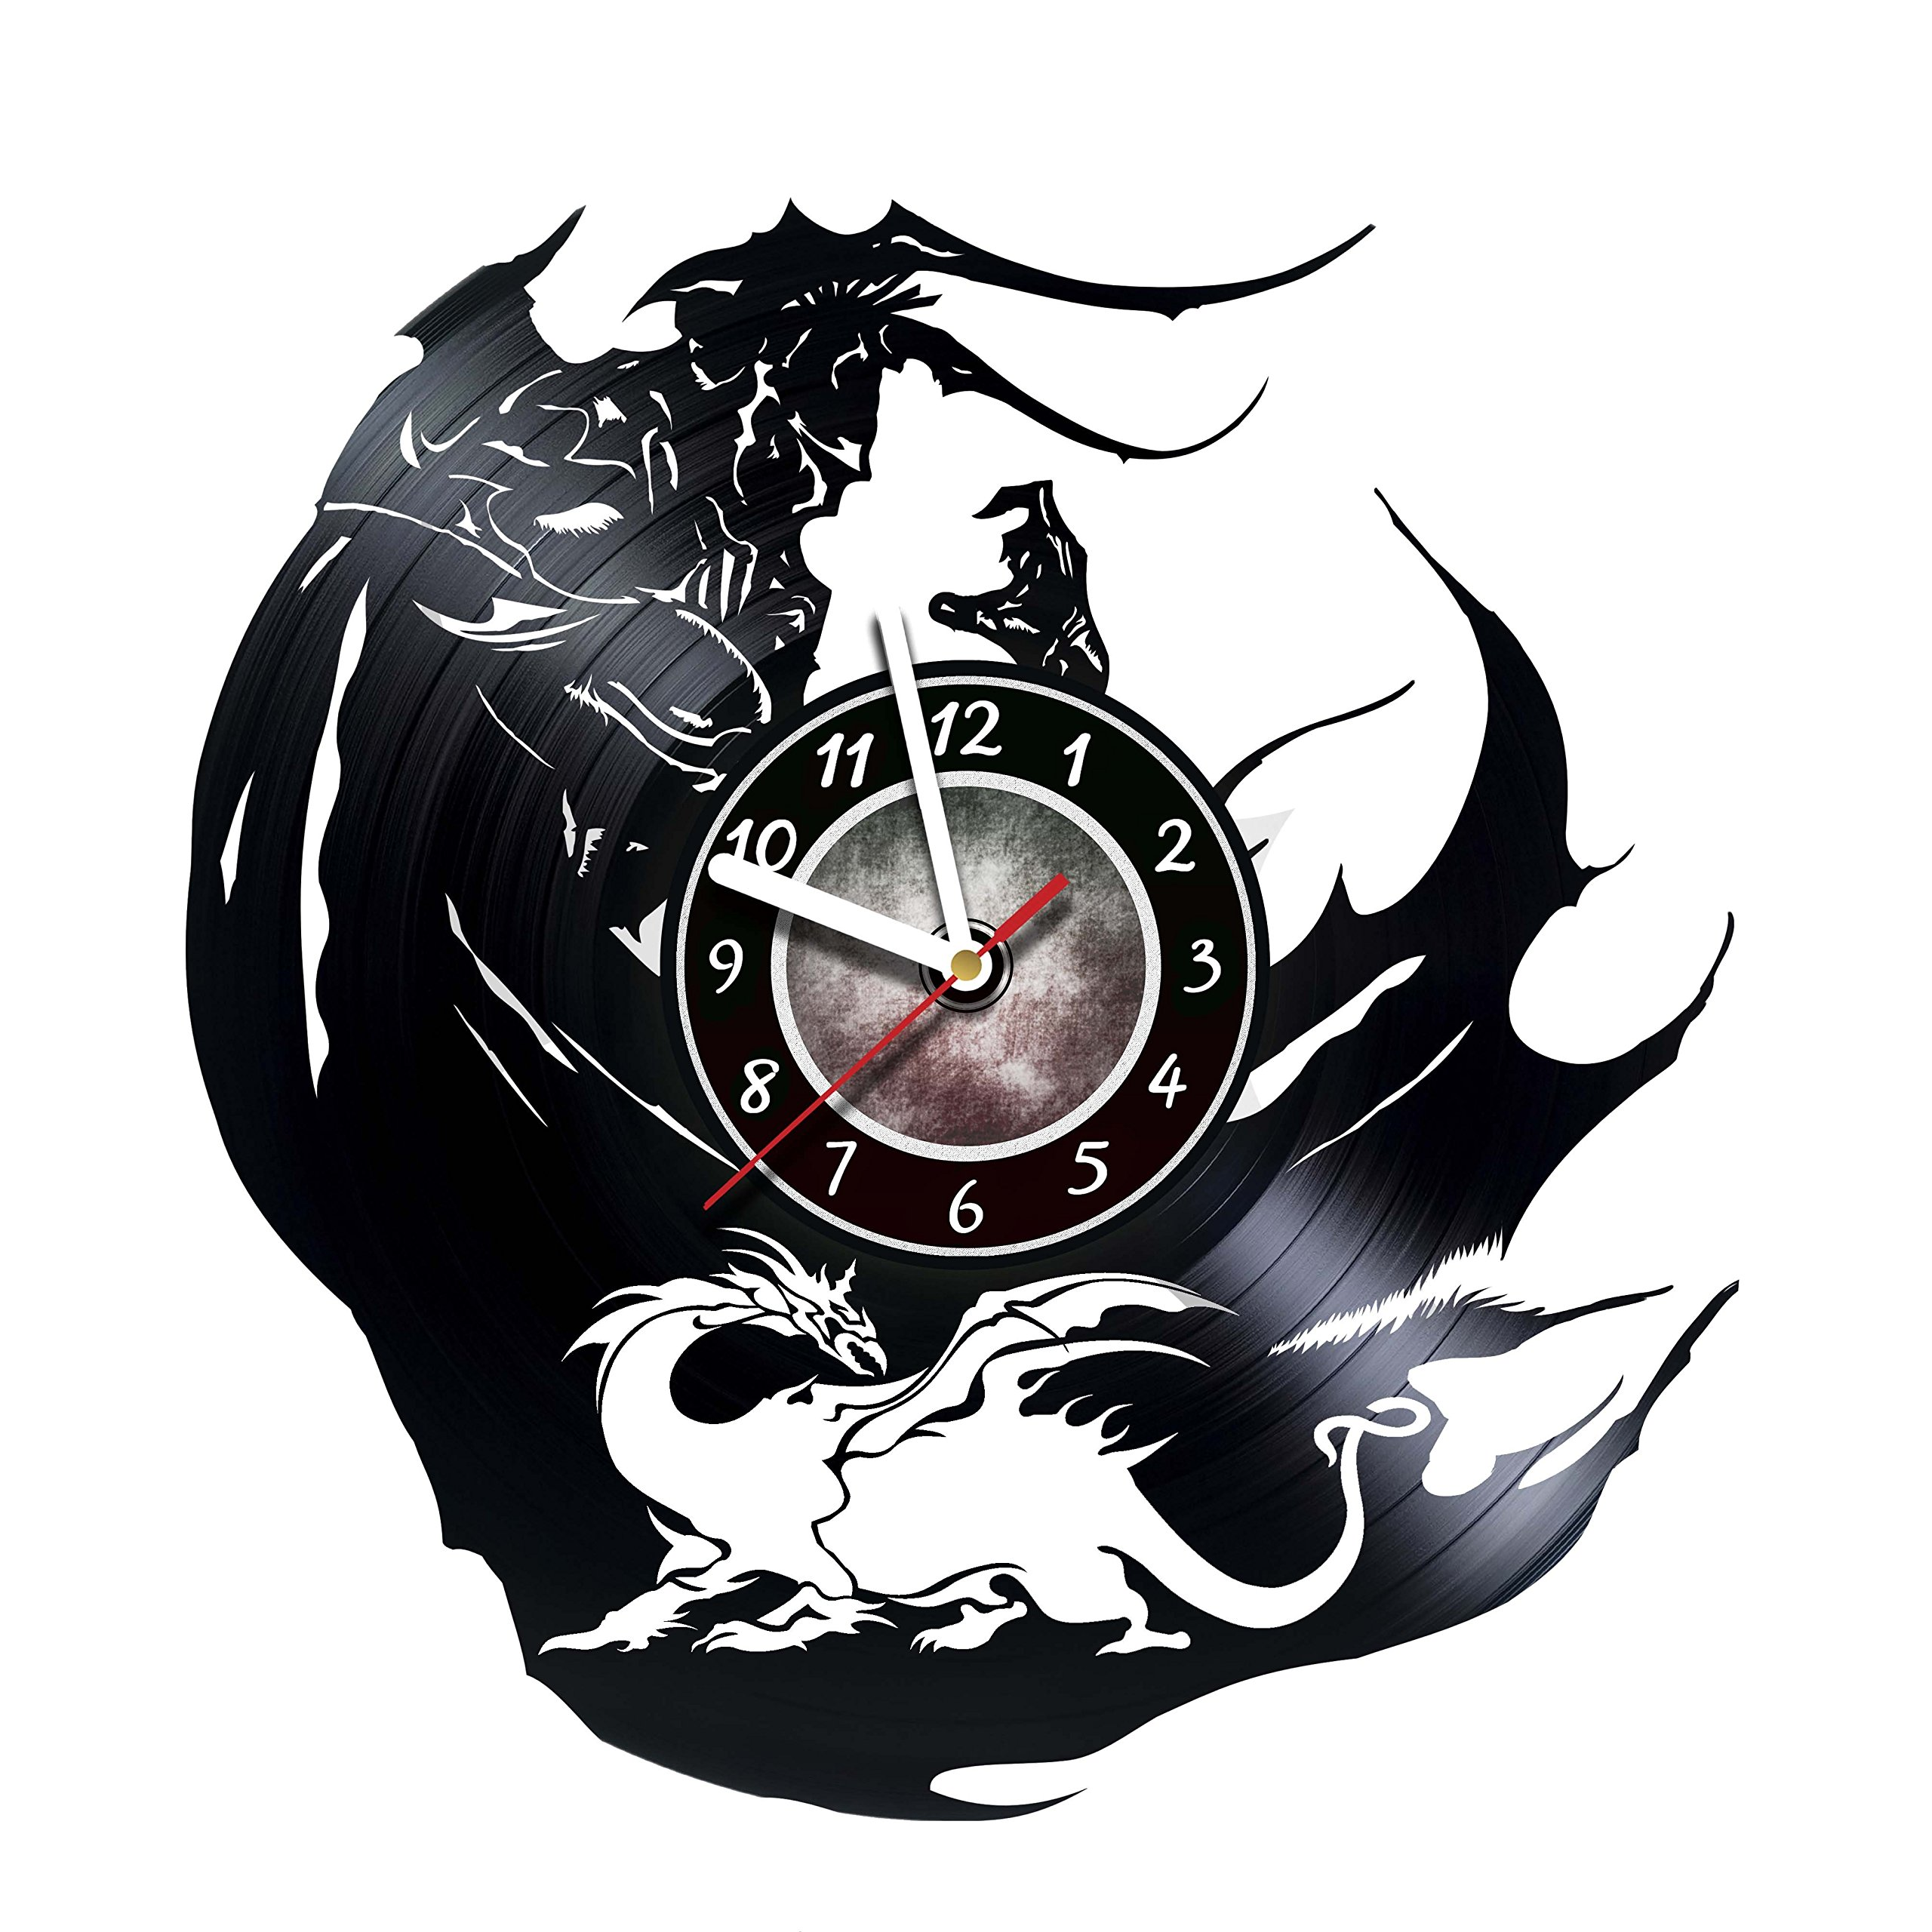 Iskra Shop Final Fantasy - Vinyl Record Wall Clock - Get unique living room wall decor - Gift ideas for boys and girls, friends, men and women, teens, children - Role-playing games Unique Art Design